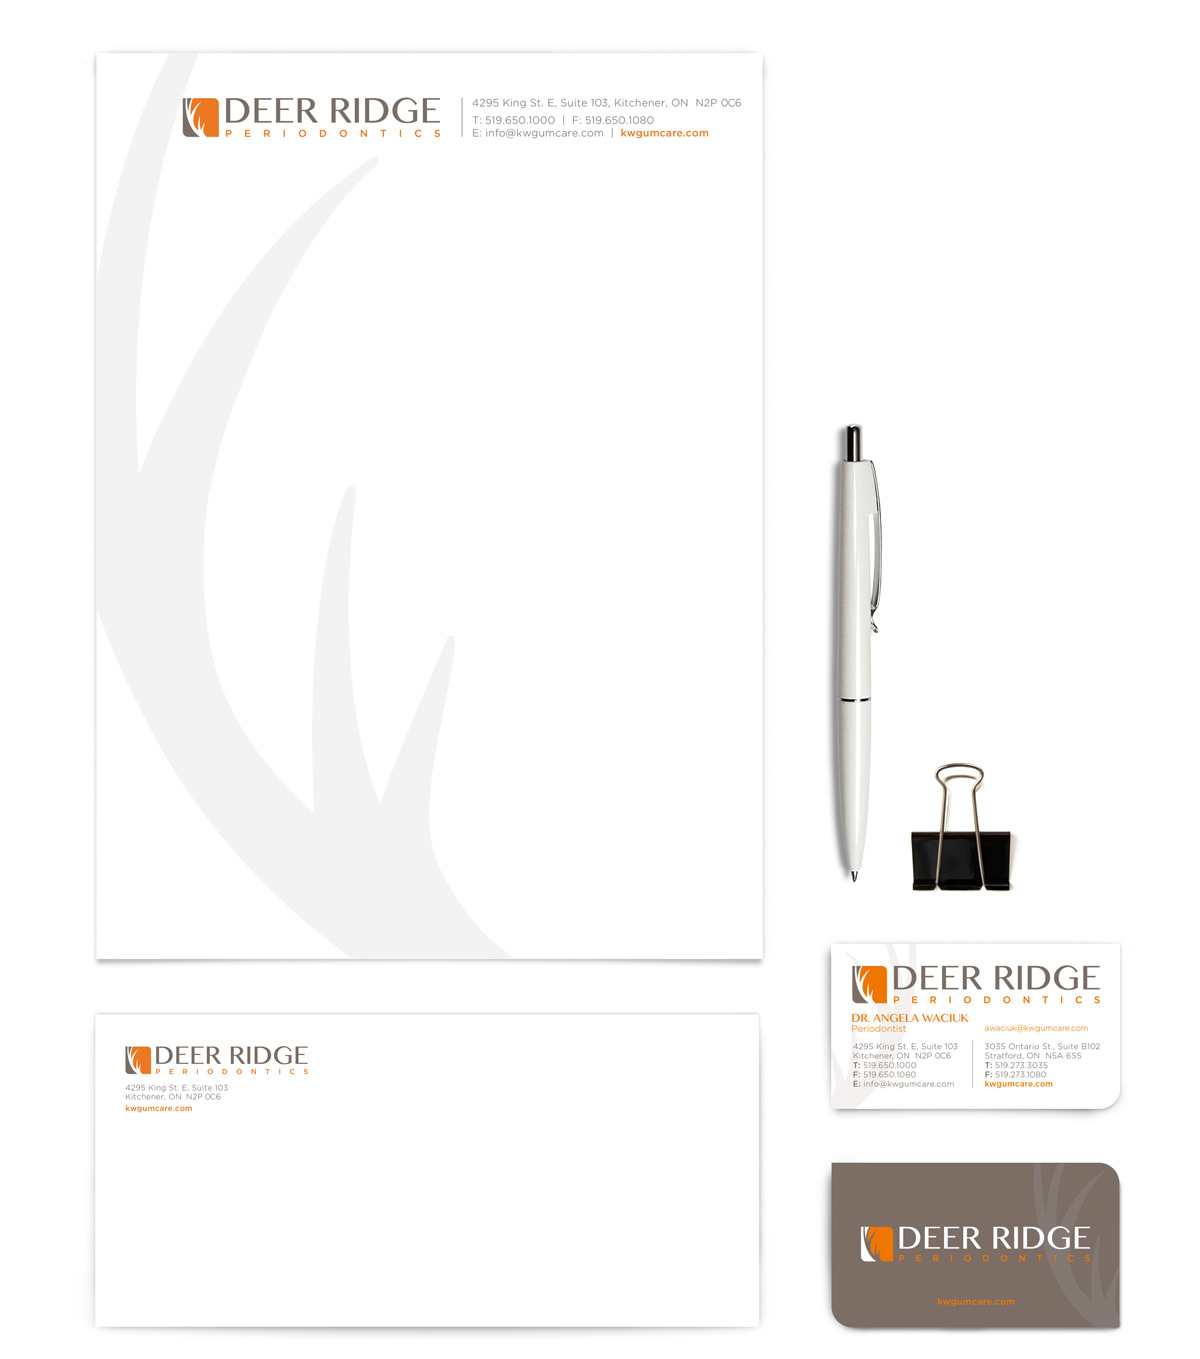 Deer Ridge Stationery Design